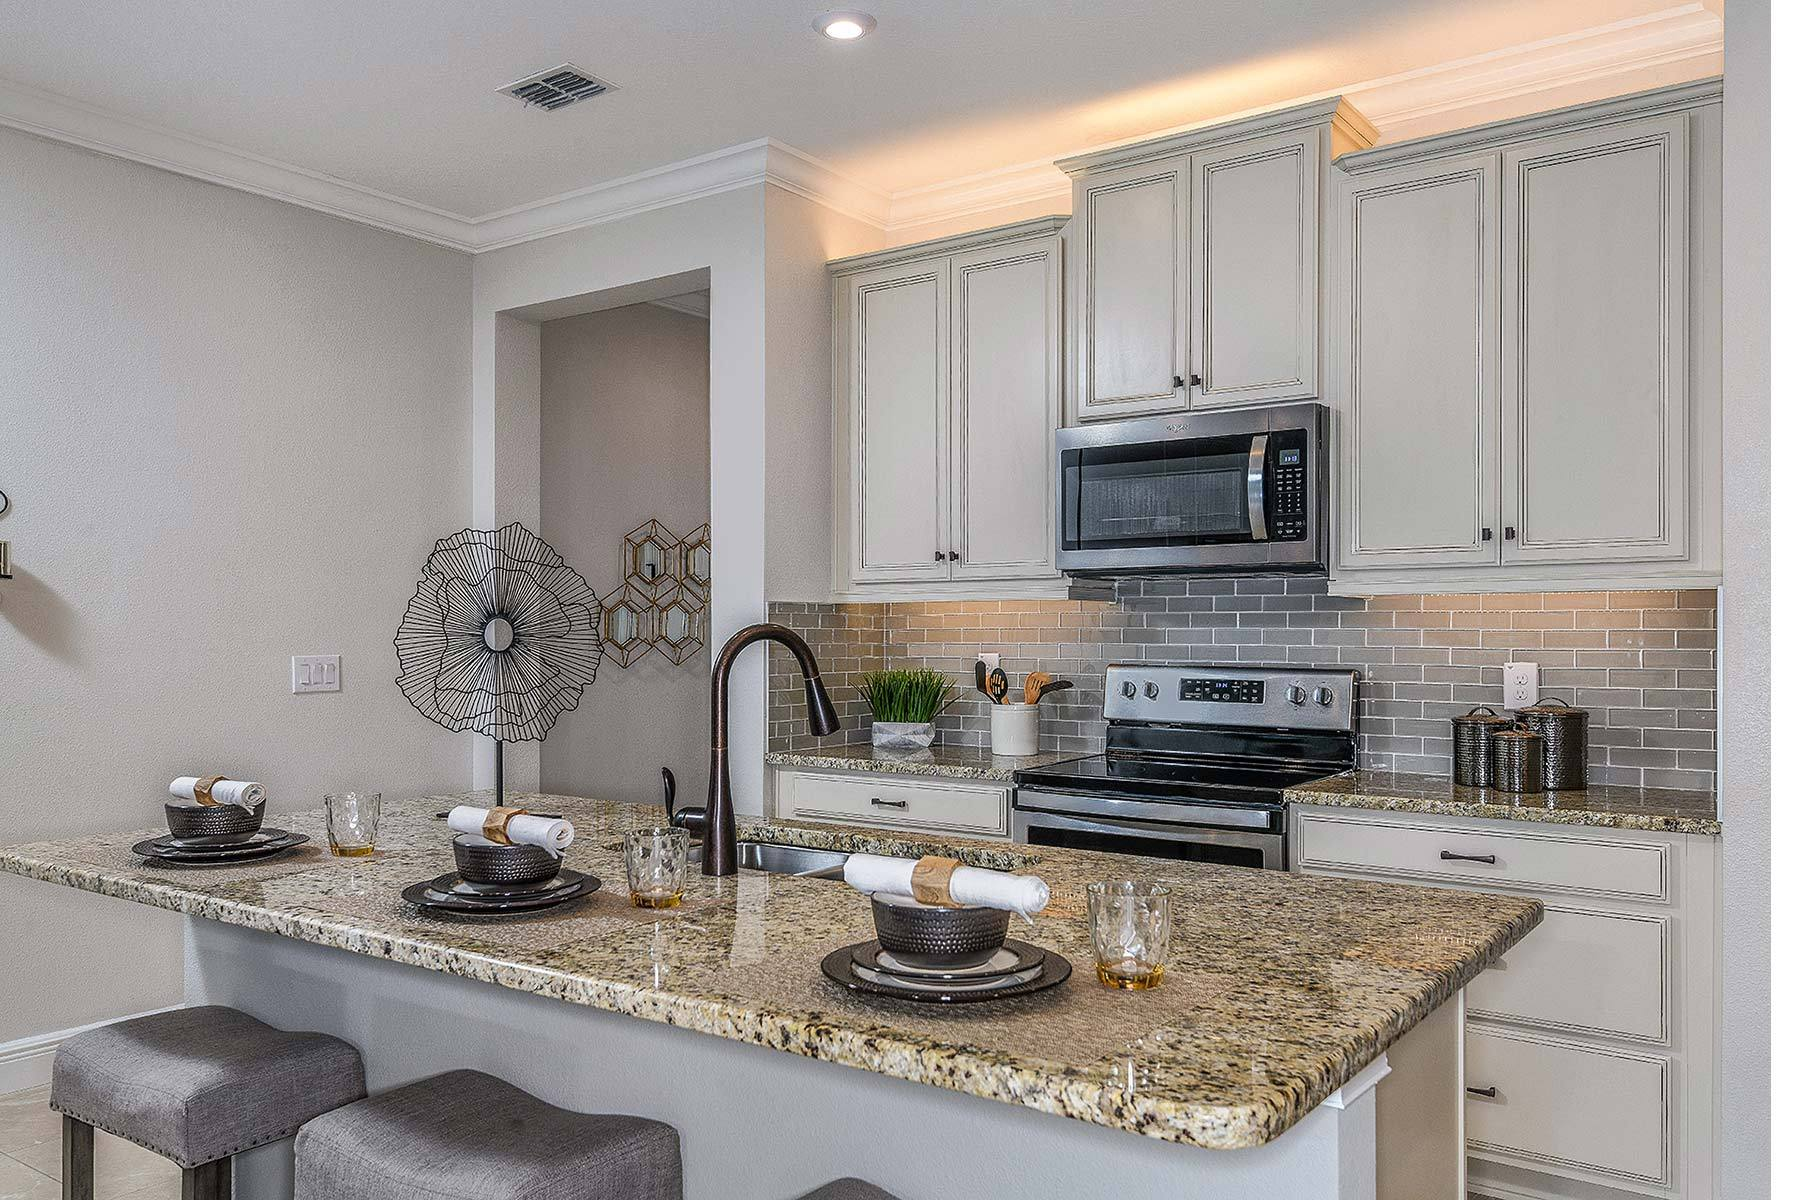 Kitchen featured in the Ormond By Mattamy Homes in Tampa-St. Petersburg, FL